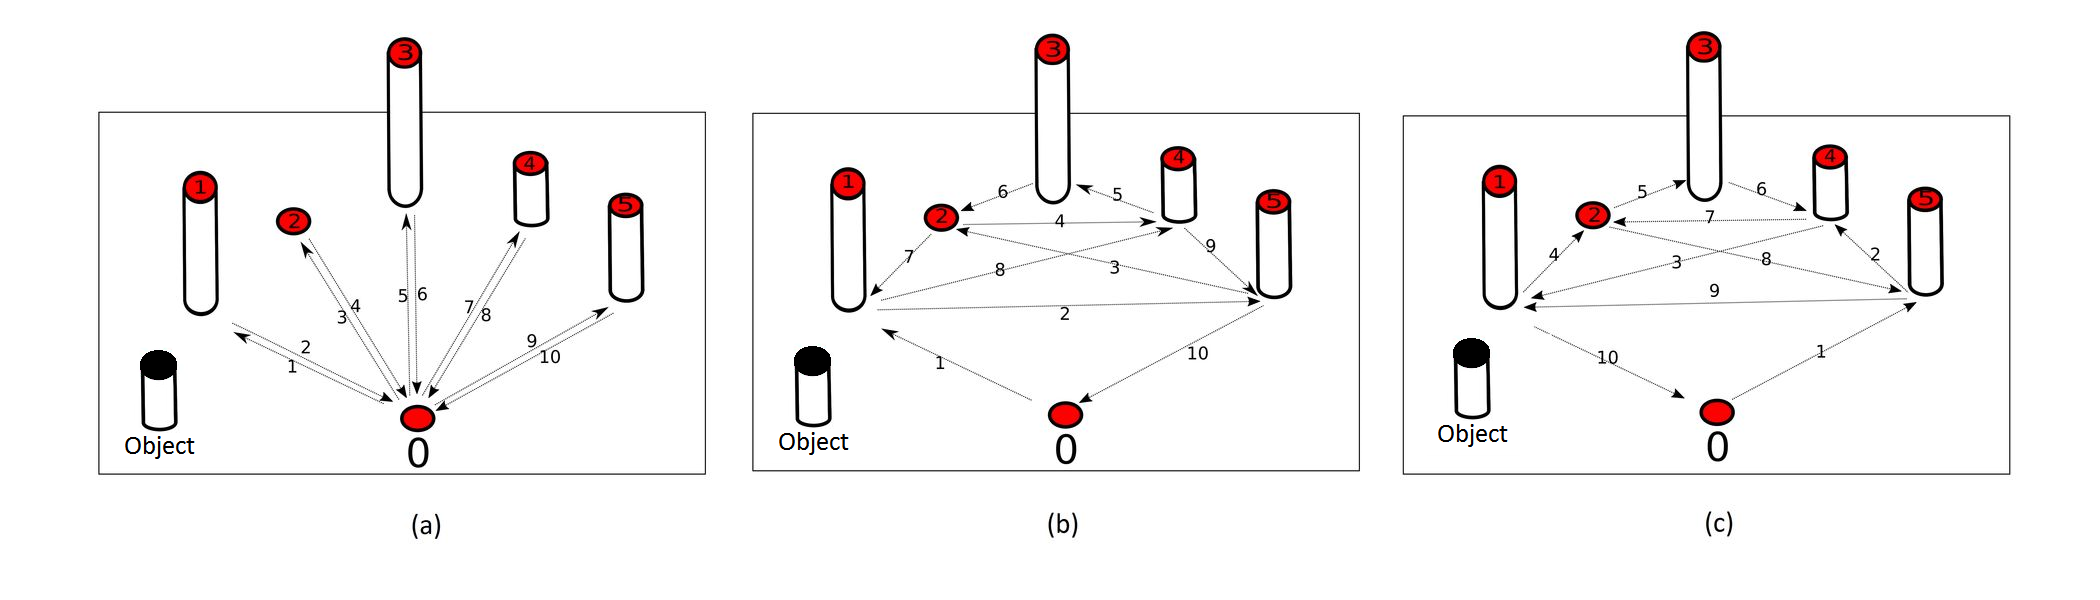 JRAT - Counting Grasping Action Using Force Myography: An